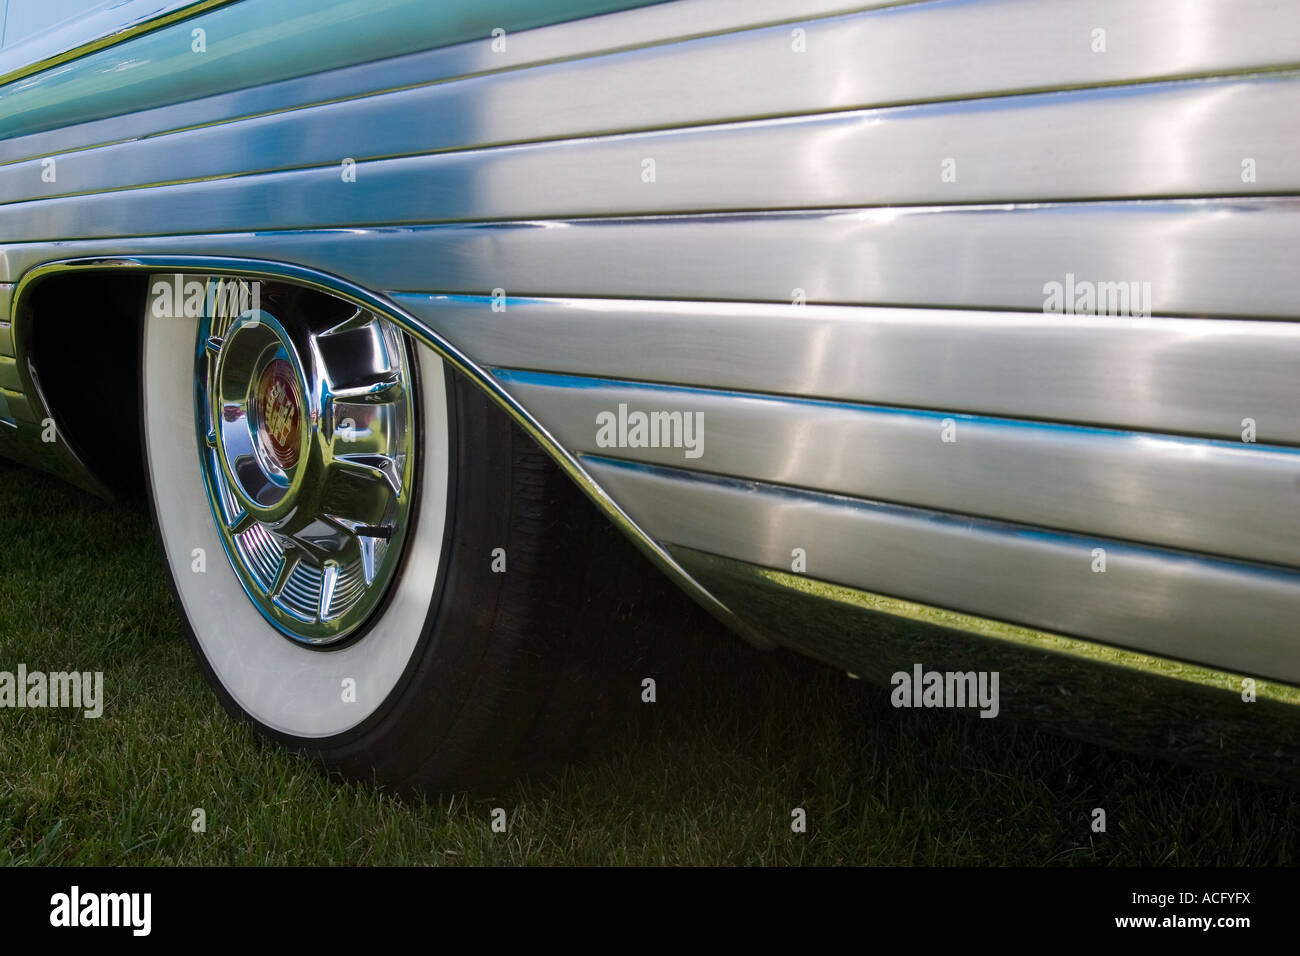 stock photo white wall tire on the back wheel of a cadillac classic car with brushed metal siding decoration on the fender